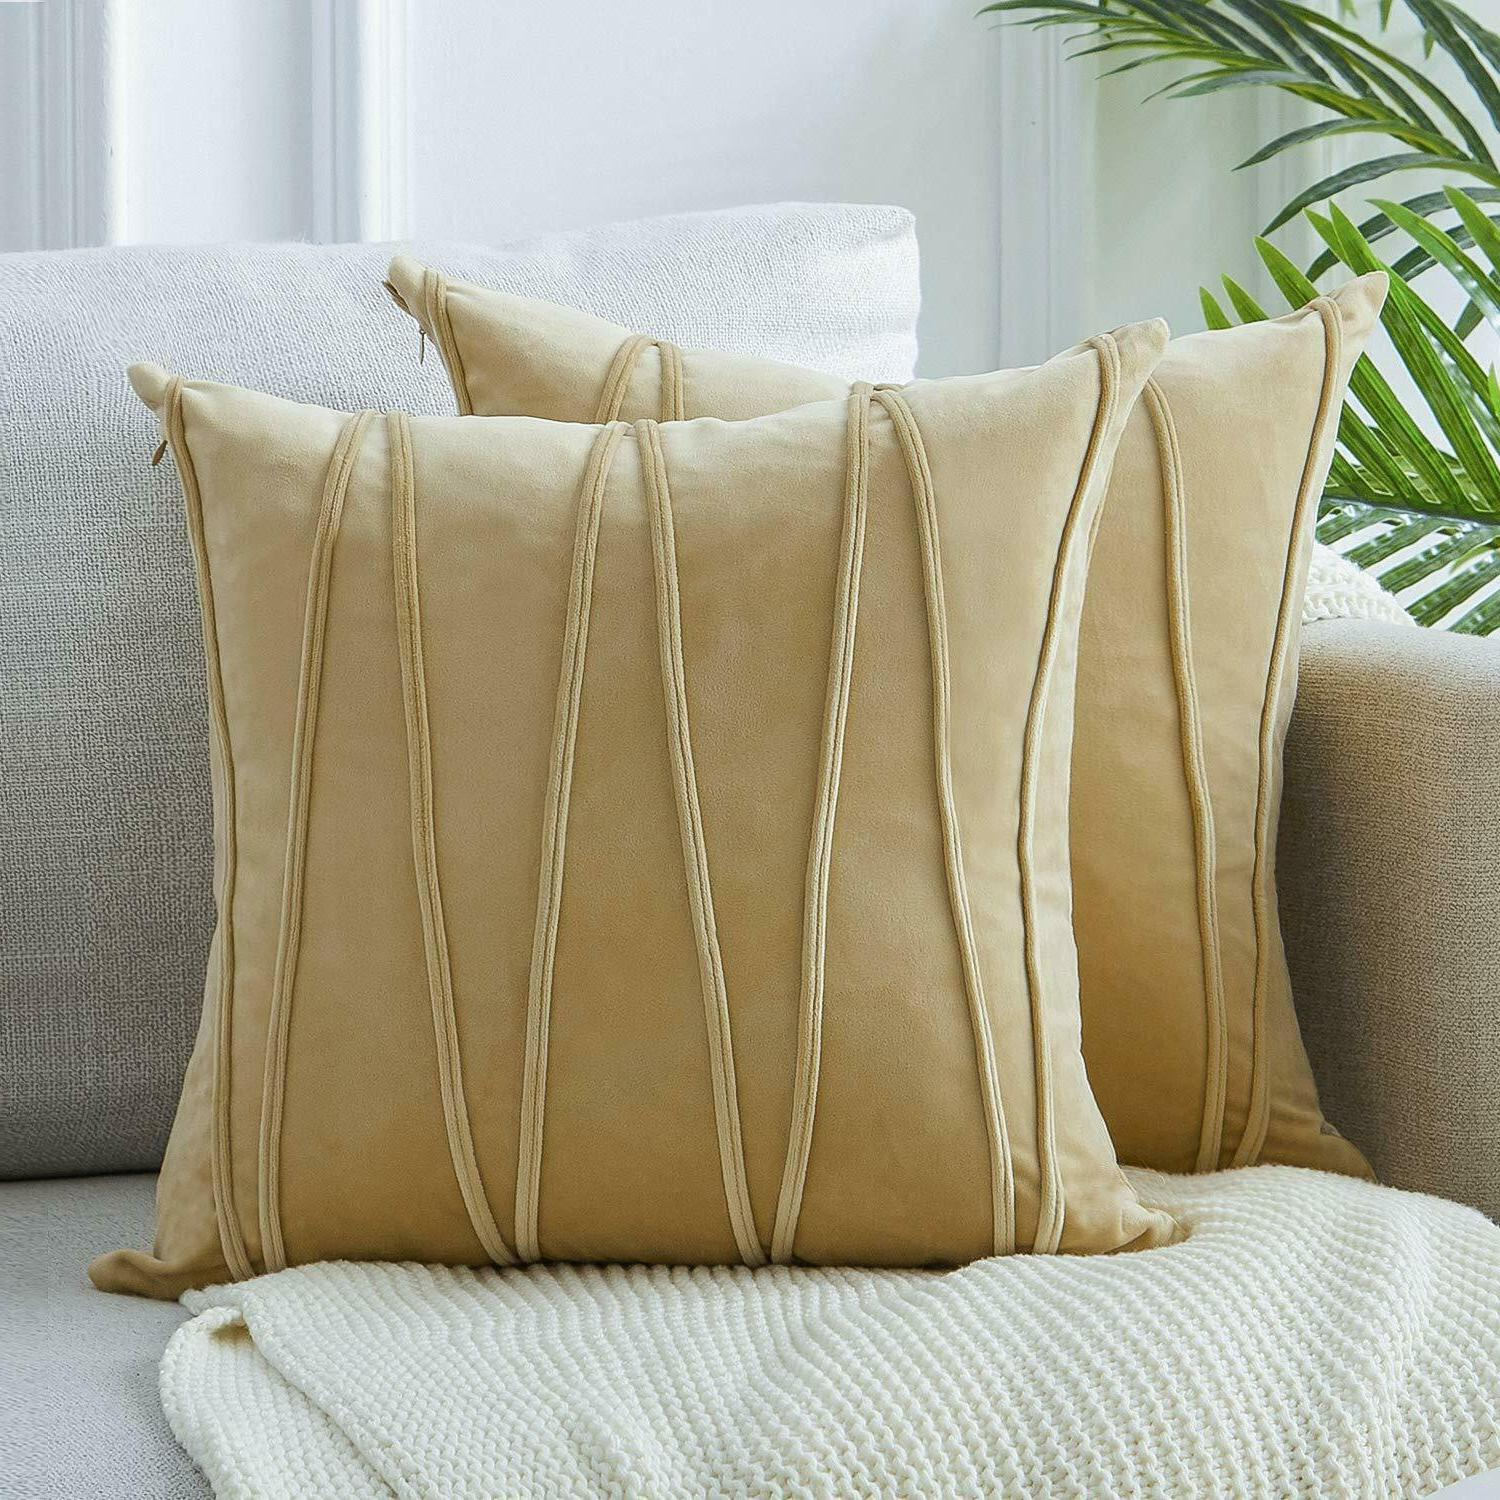 decorative hand made throw pillow covers 18